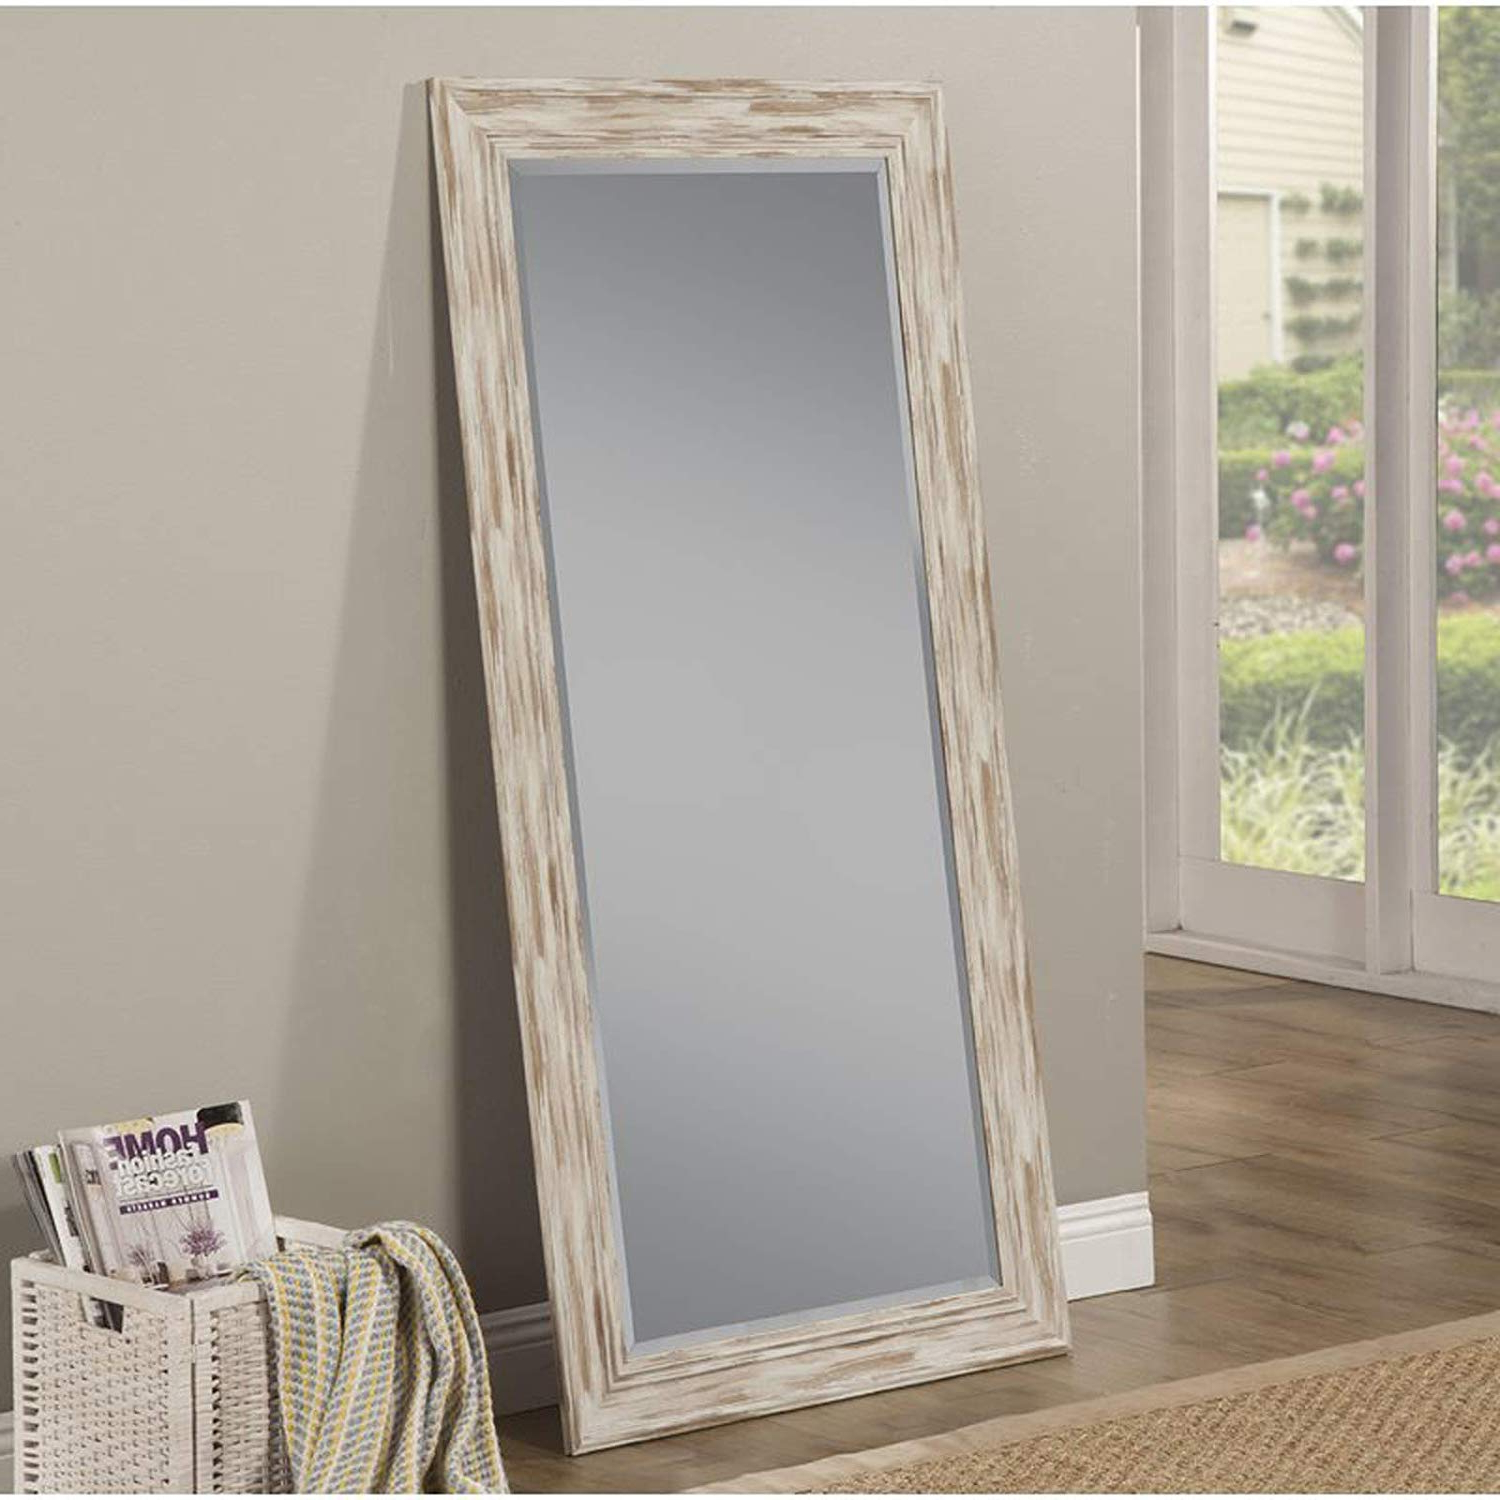 Most Recently Released Wall Mirrors Full Length With Regard To Full Length Wall Mirror – Rustic Rectangular Shape Horizontal & Vertical  Mirror – Can Be Use In Living Room, Bedroom, Entryway Or Bathroom (Antique (View 8 of 20)